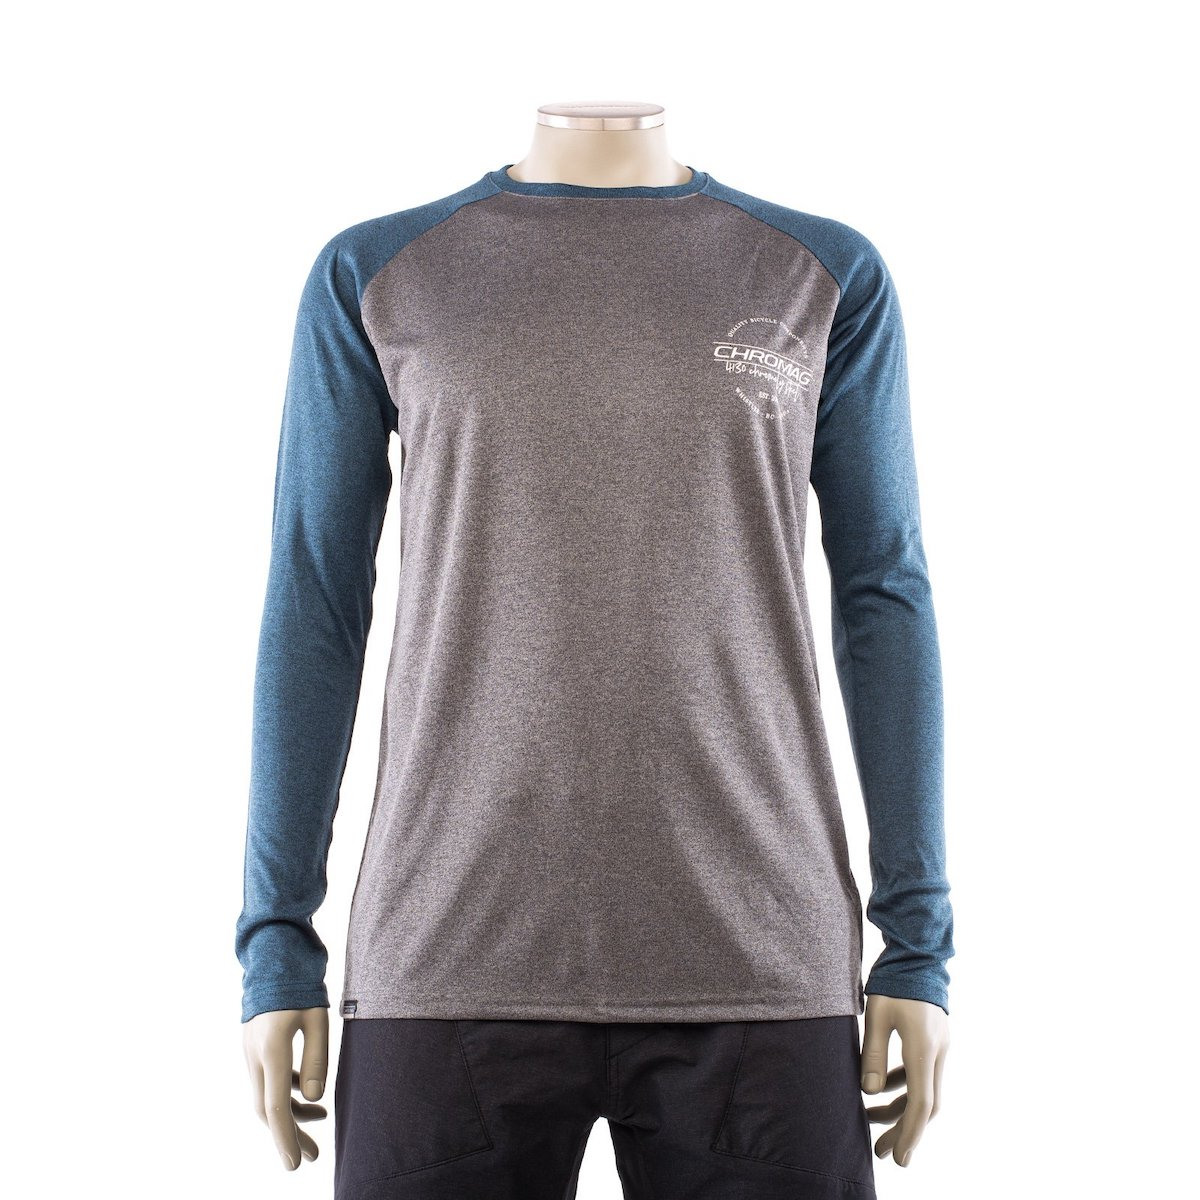 Jersey LS Dominion 4130 Charcoal